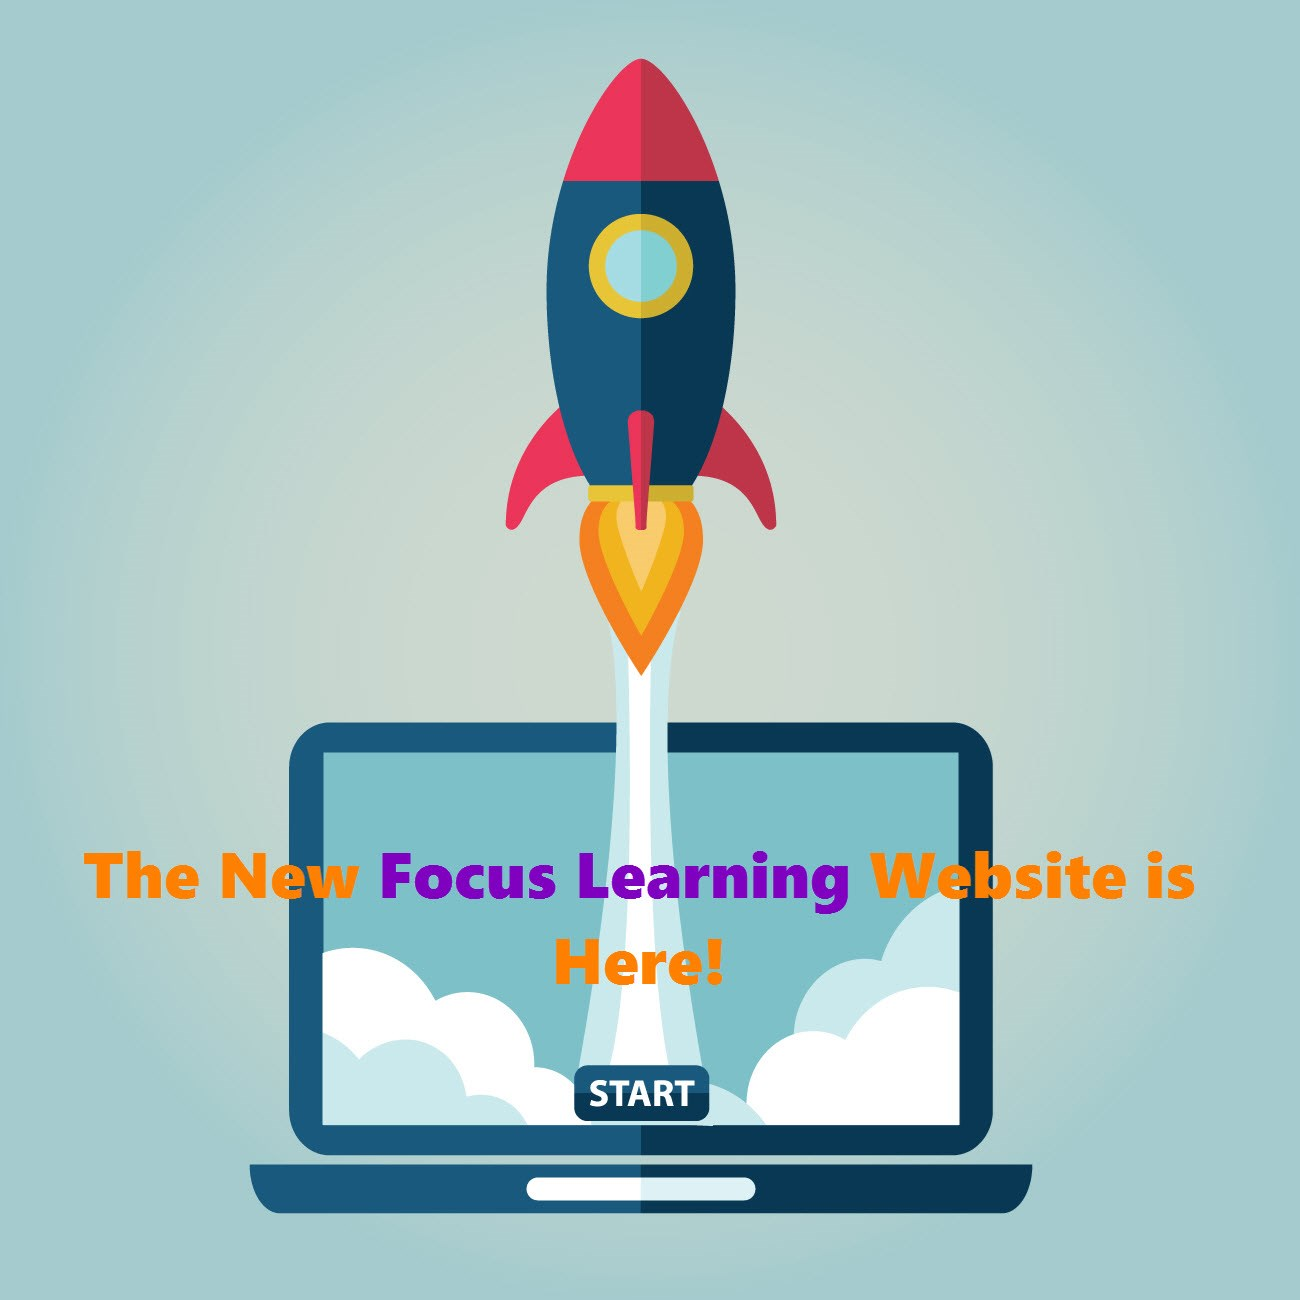 Its Here - Announcing the New and Improved Focus Learning Website